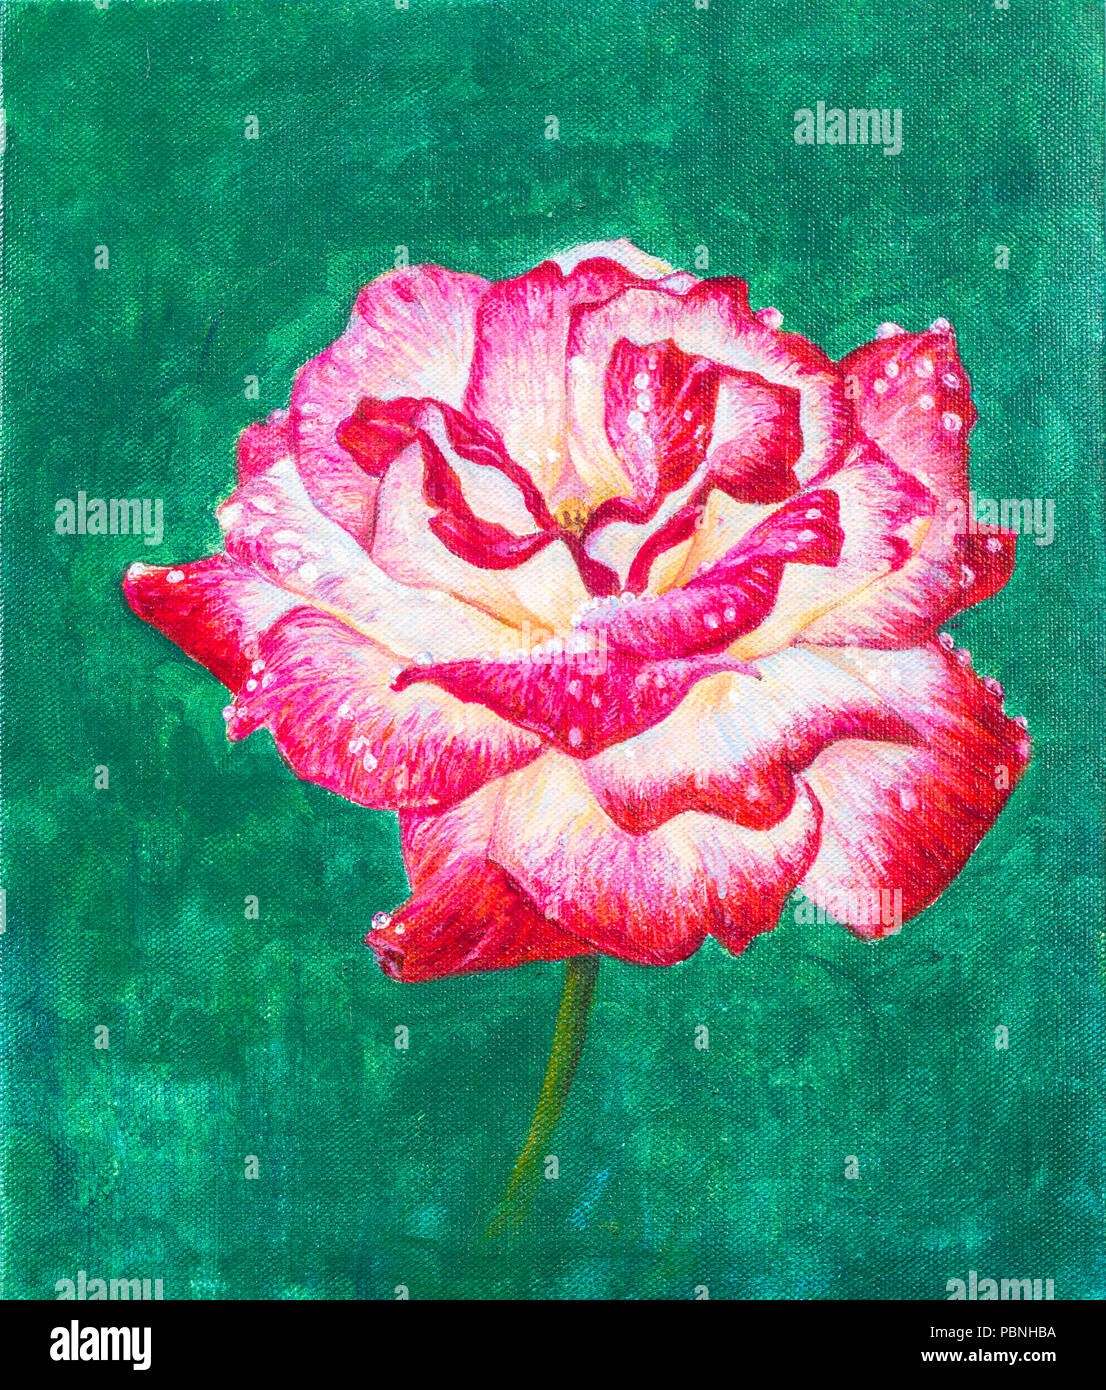 Red rose flower painting on green background with acrylic